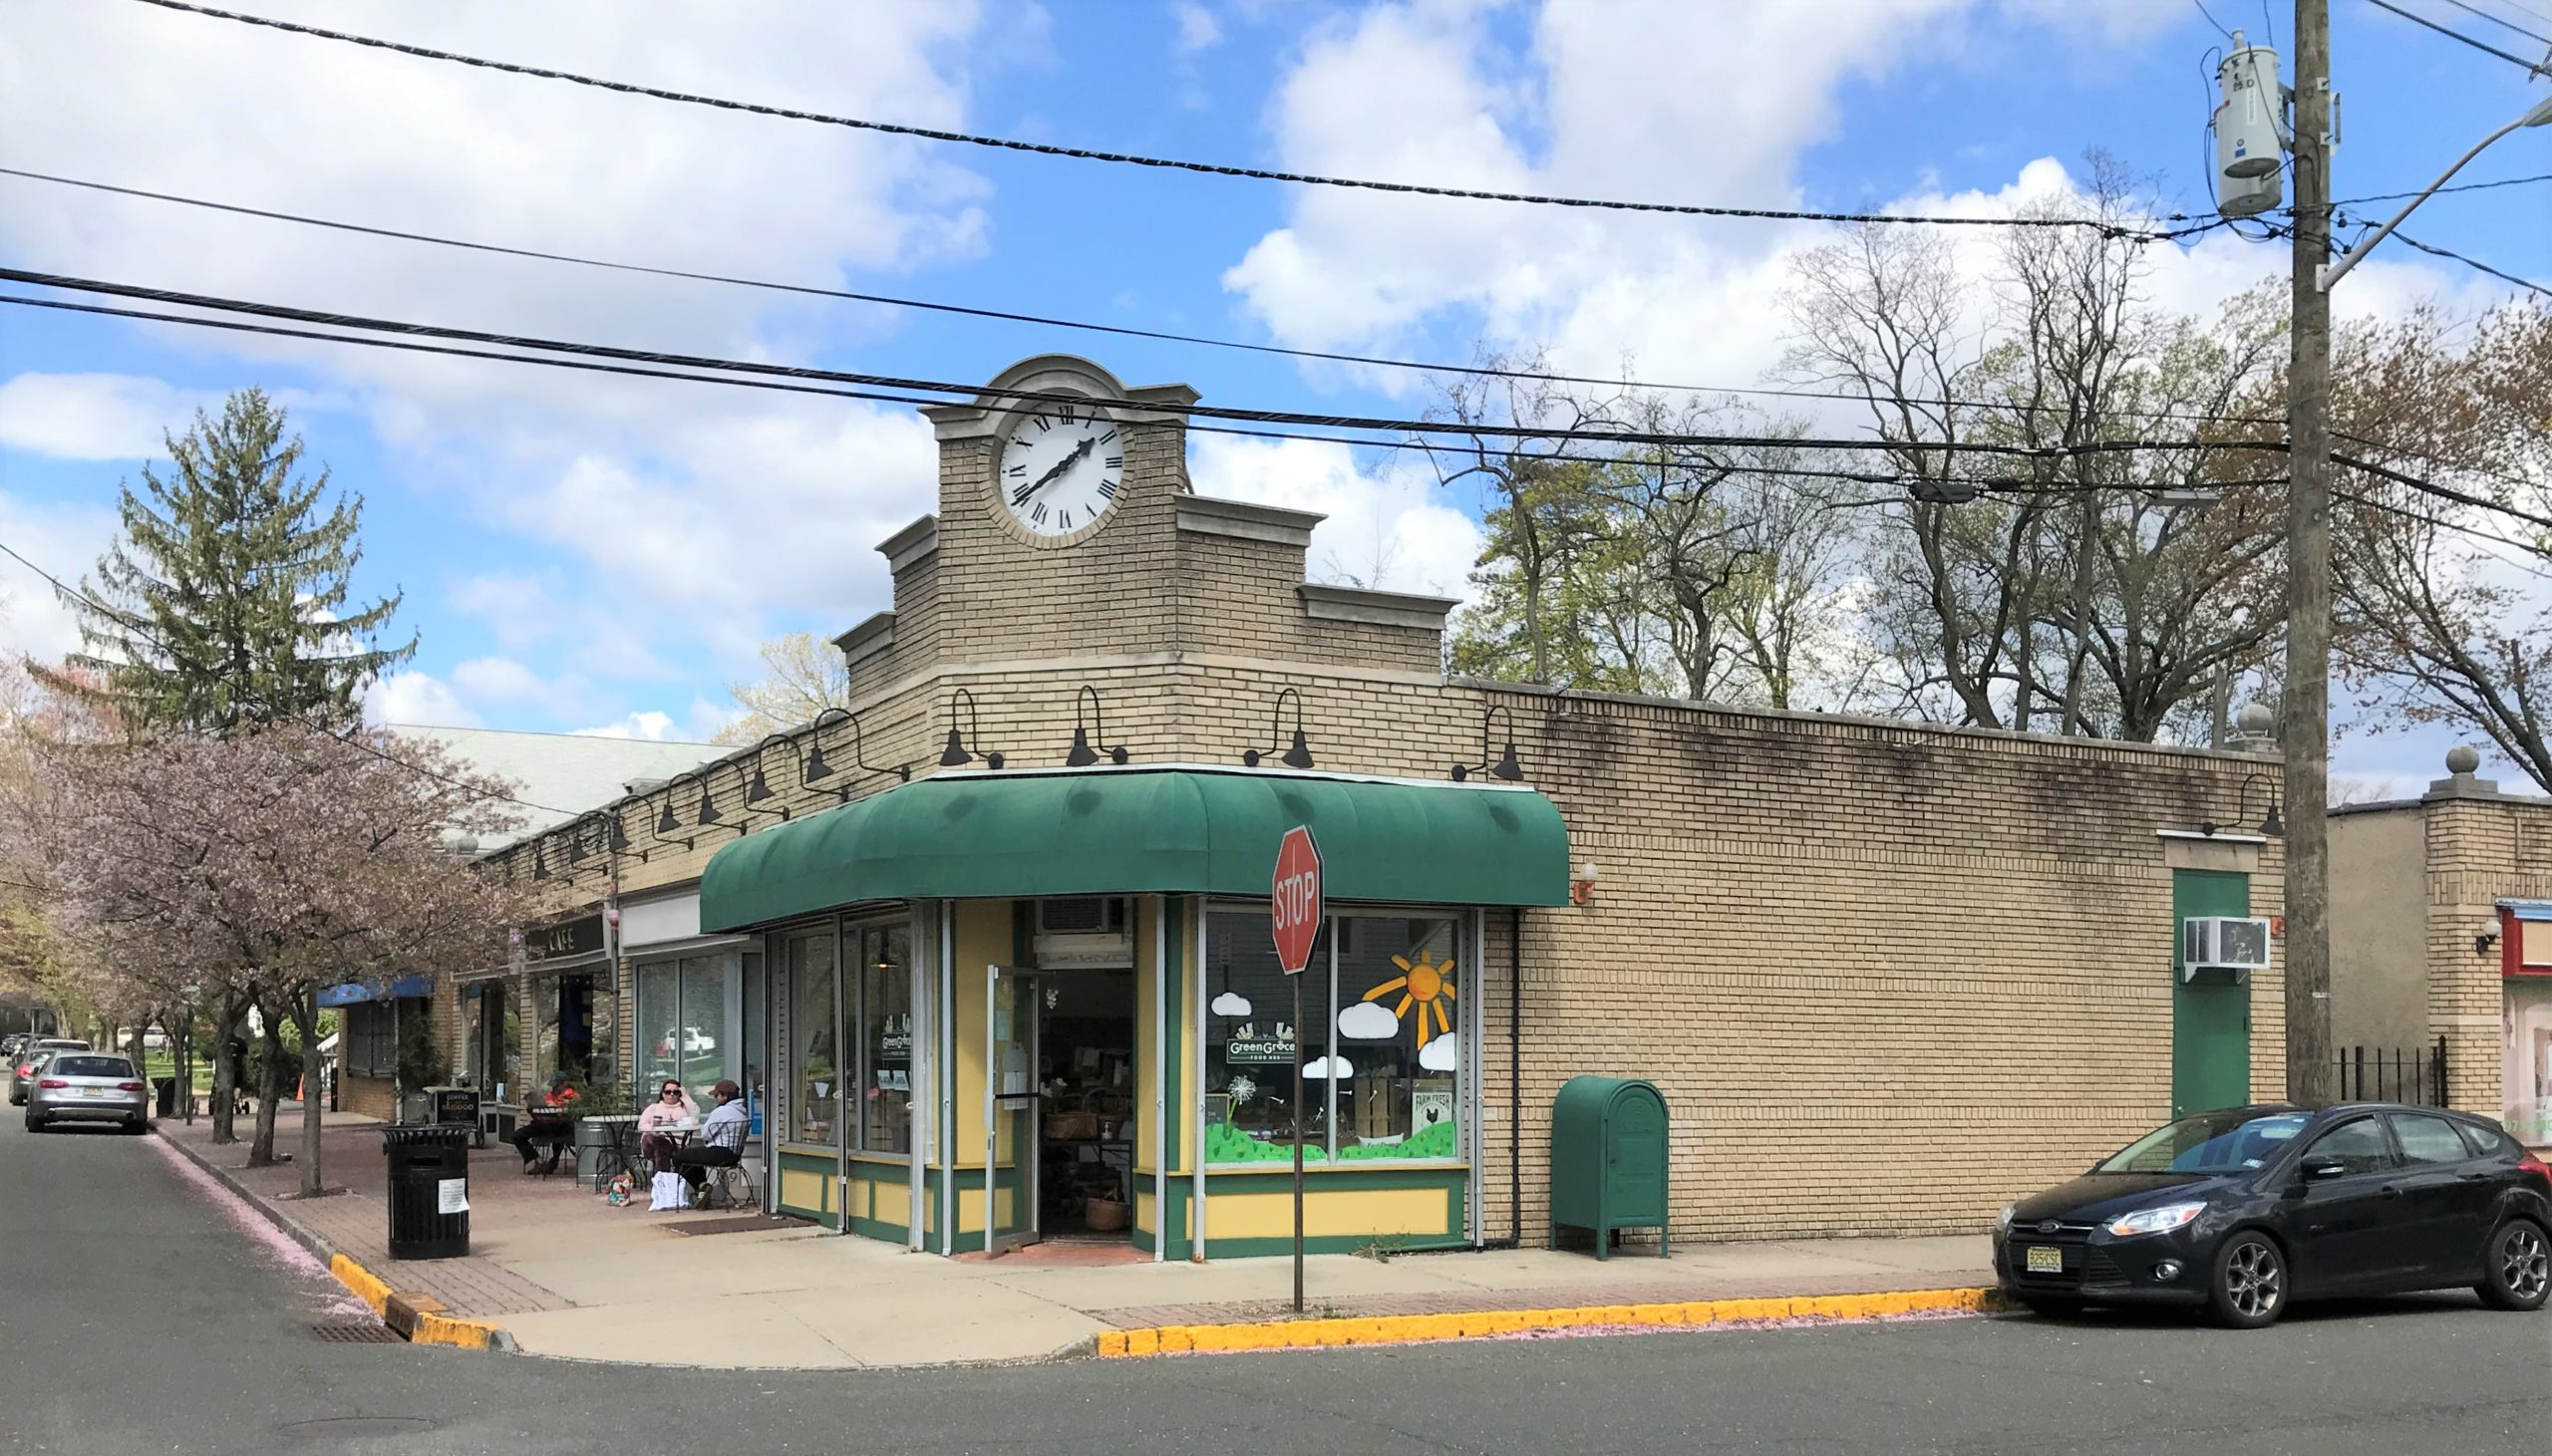 Revitalization of retail storefronts, Bloomfield NJ